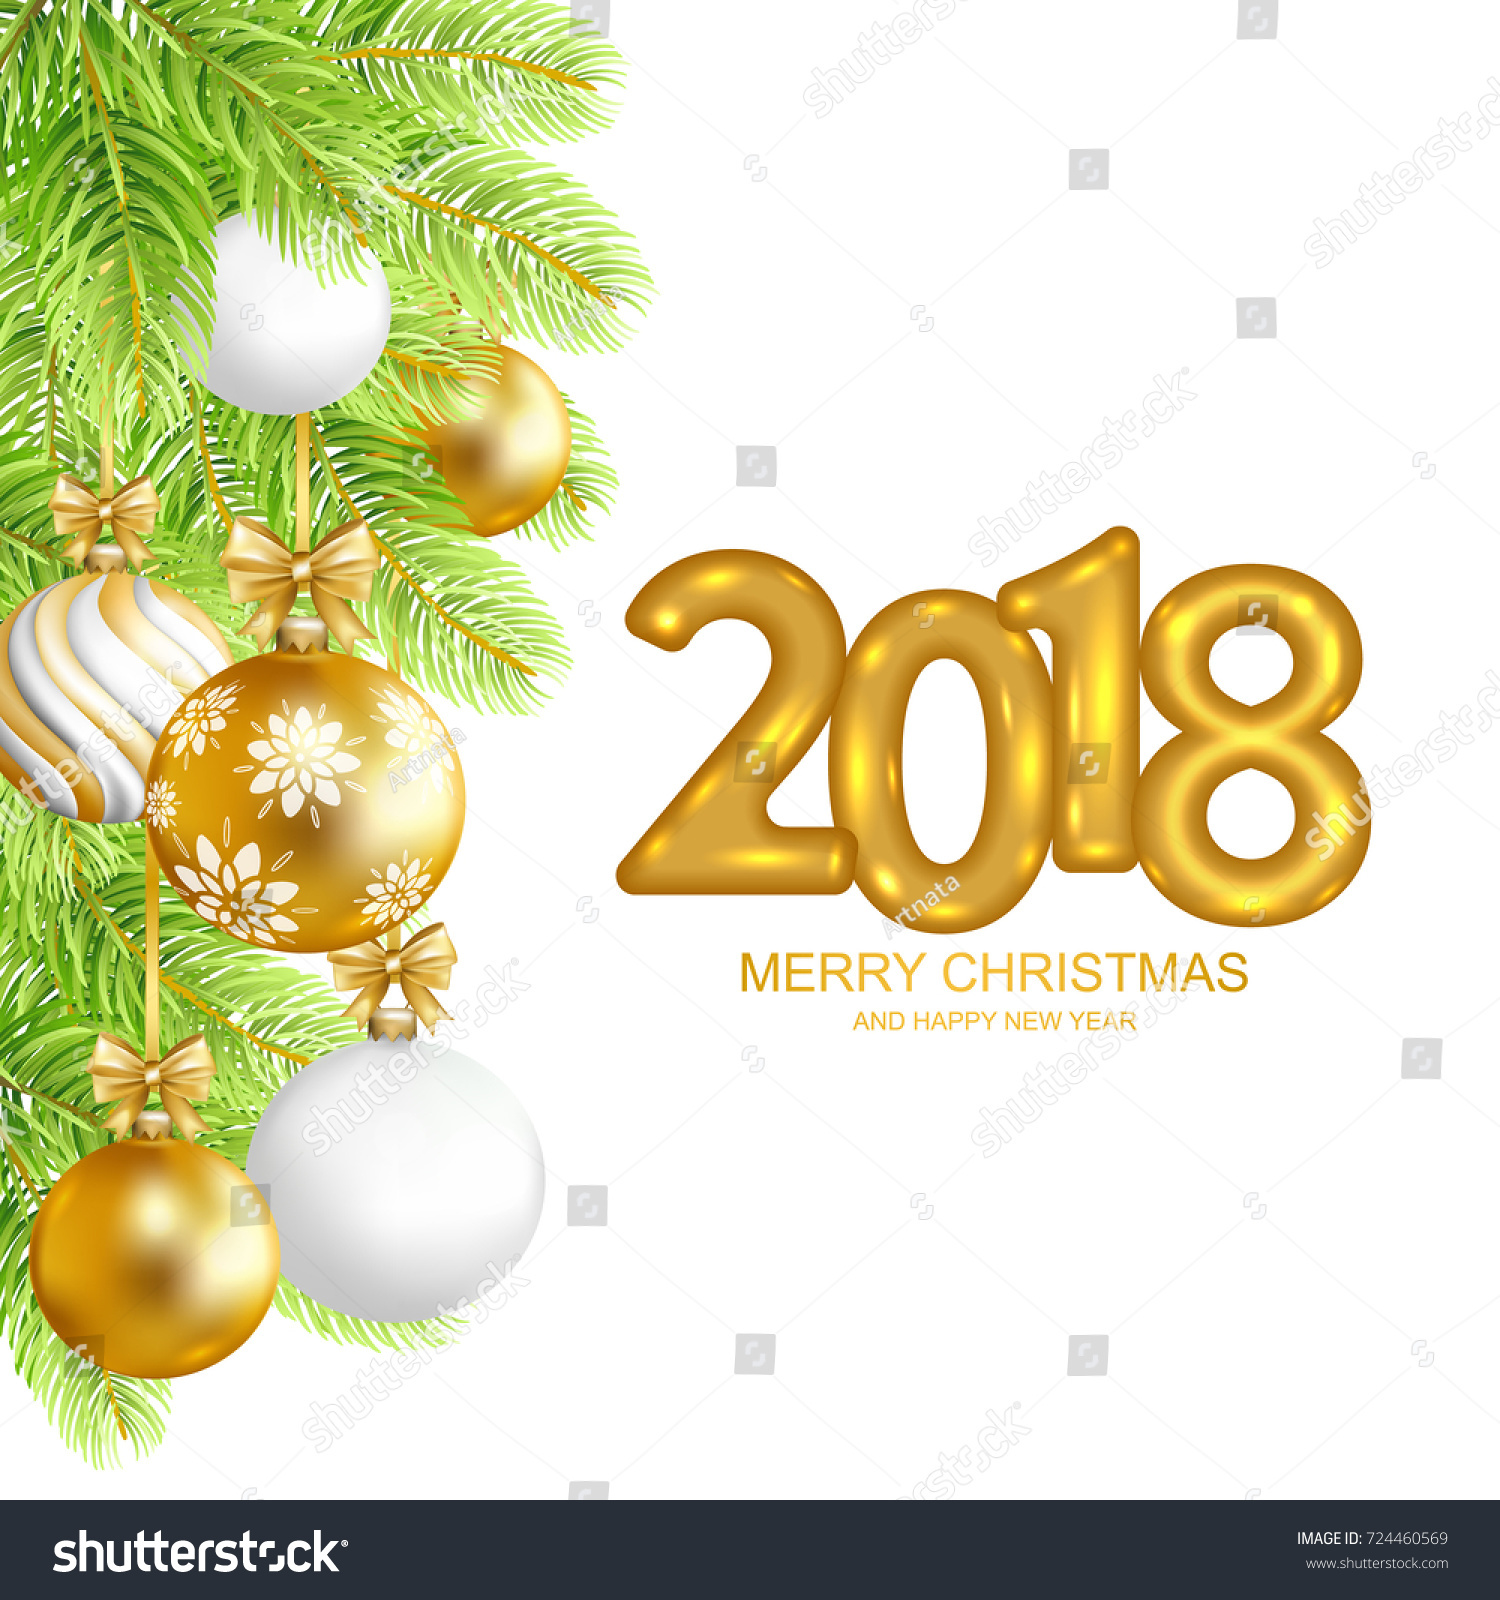 2018 Marry Christmas Happy New Year Stock Vector (Royalty Free ...